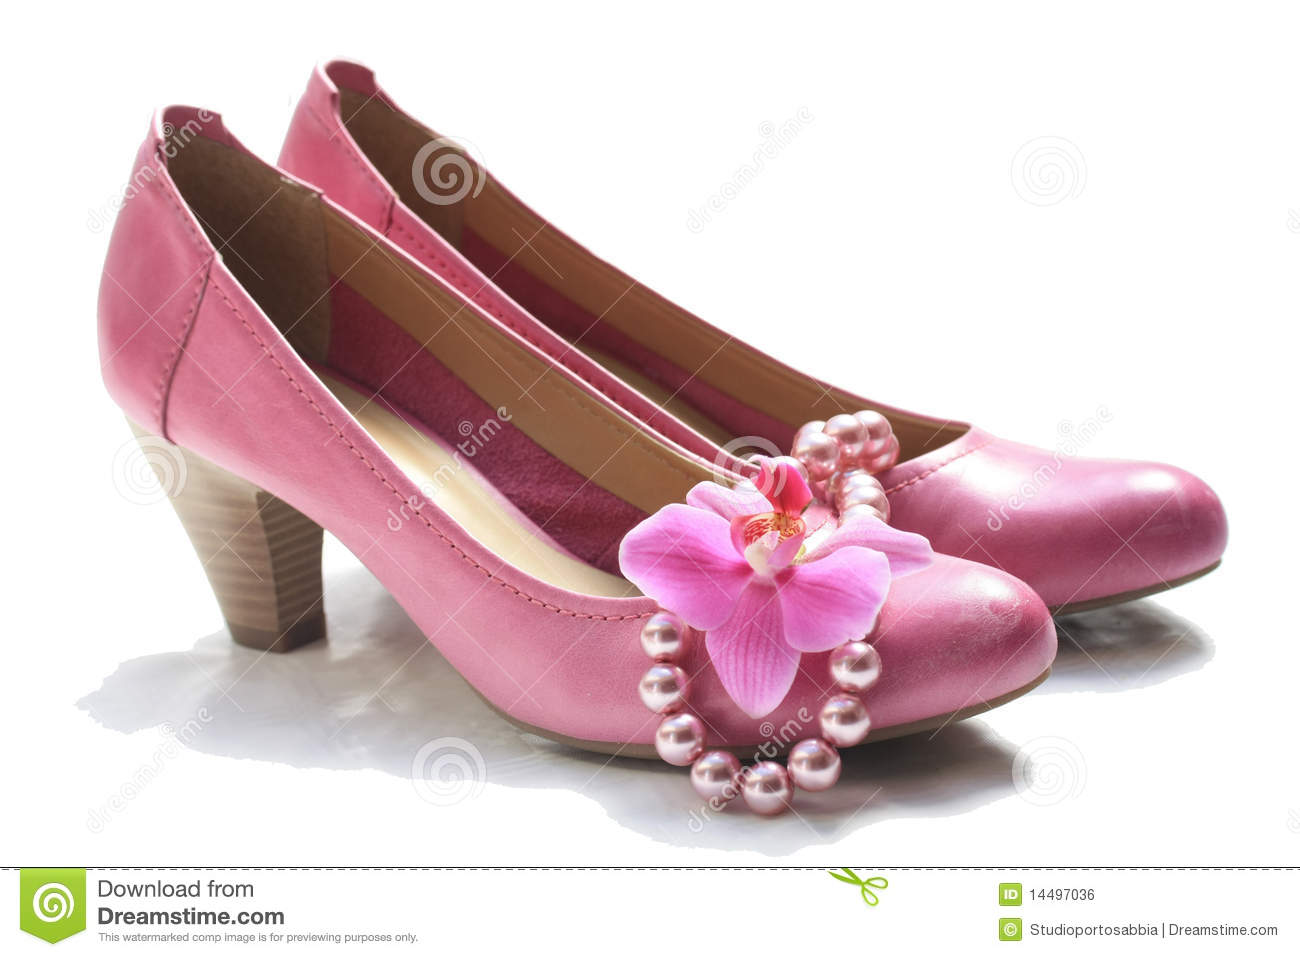 pink leather shoes royalty free stock image image 14497036